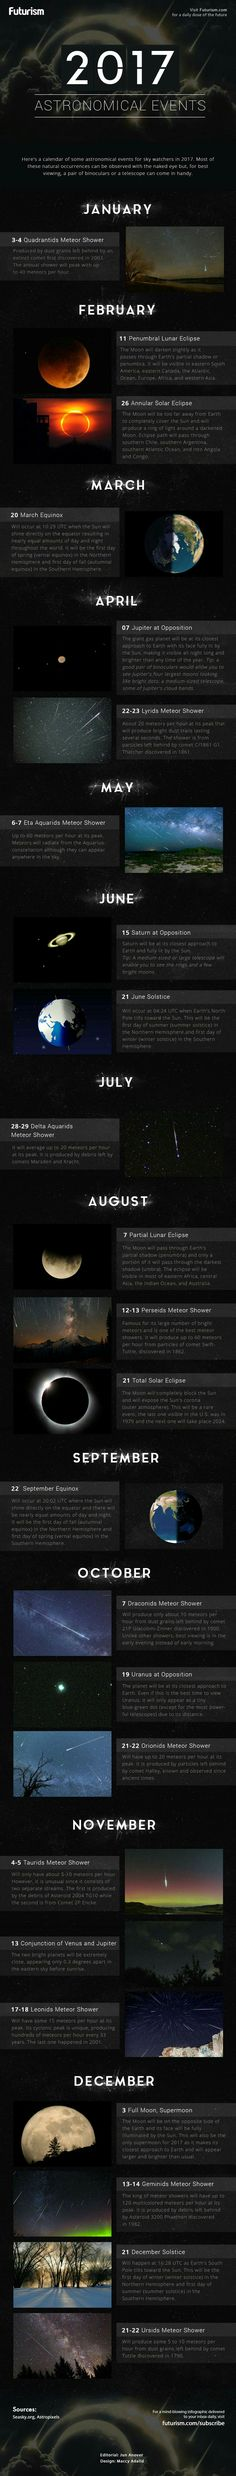 Meteor showers, eclipses, etc. in 2017- infographic